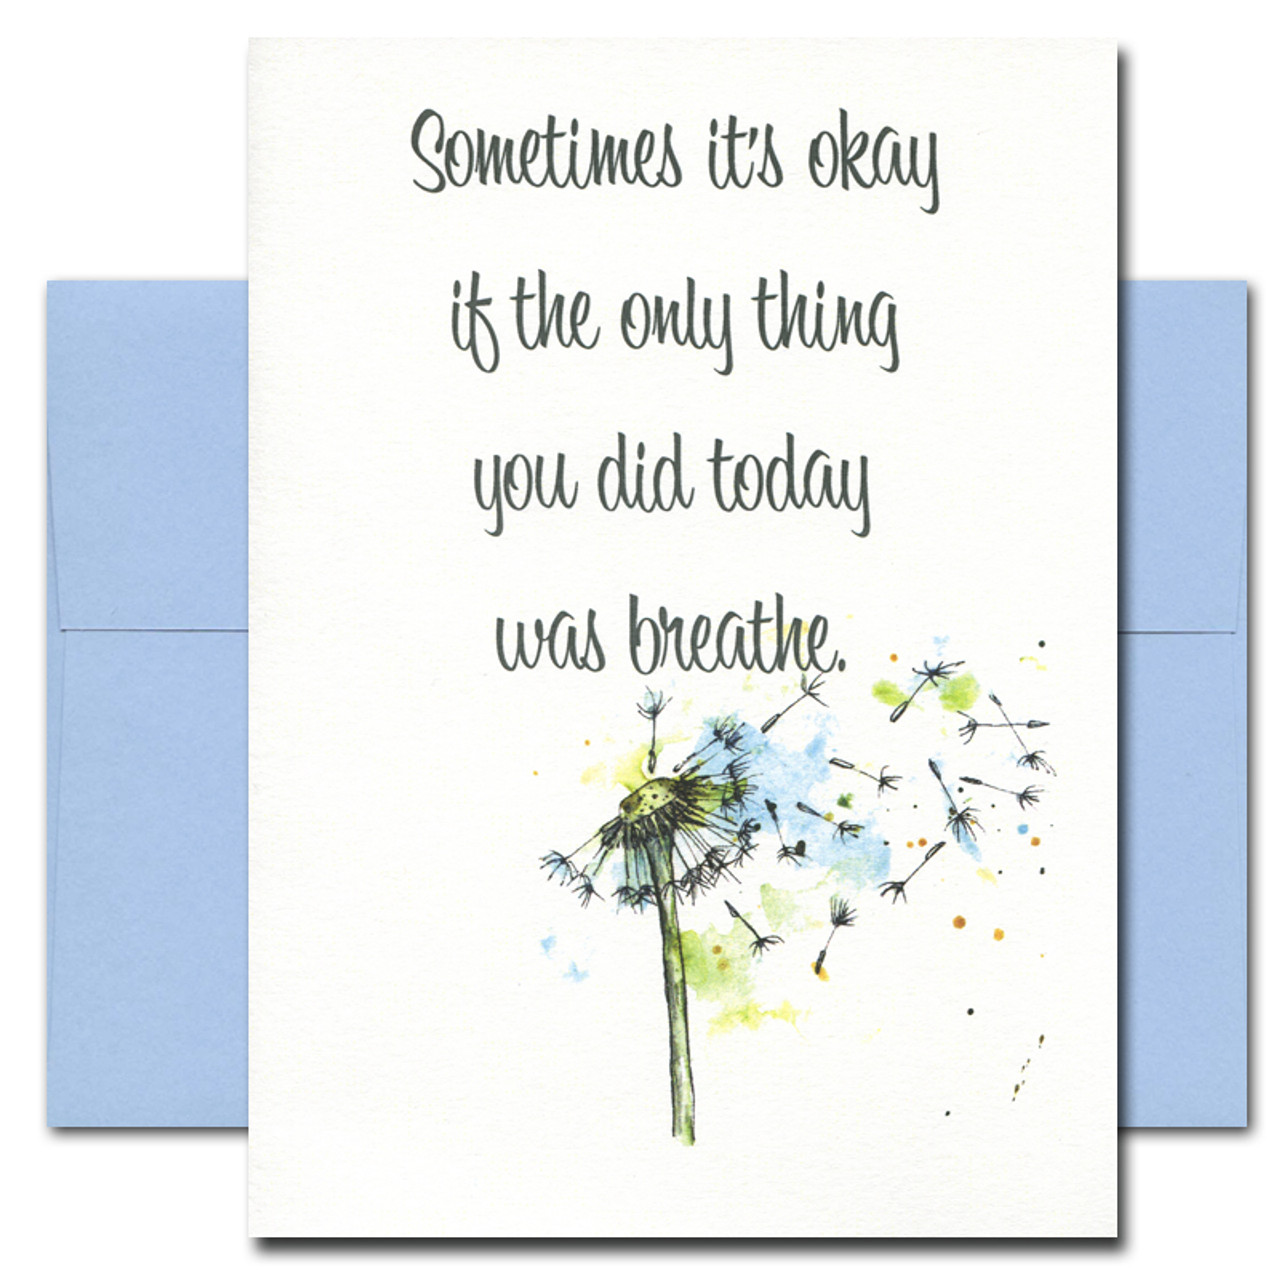 Thinking of You card has a watercolor painting of a small dandelion and the words:  Sometimes it's okay if the only thing you did today was breathe